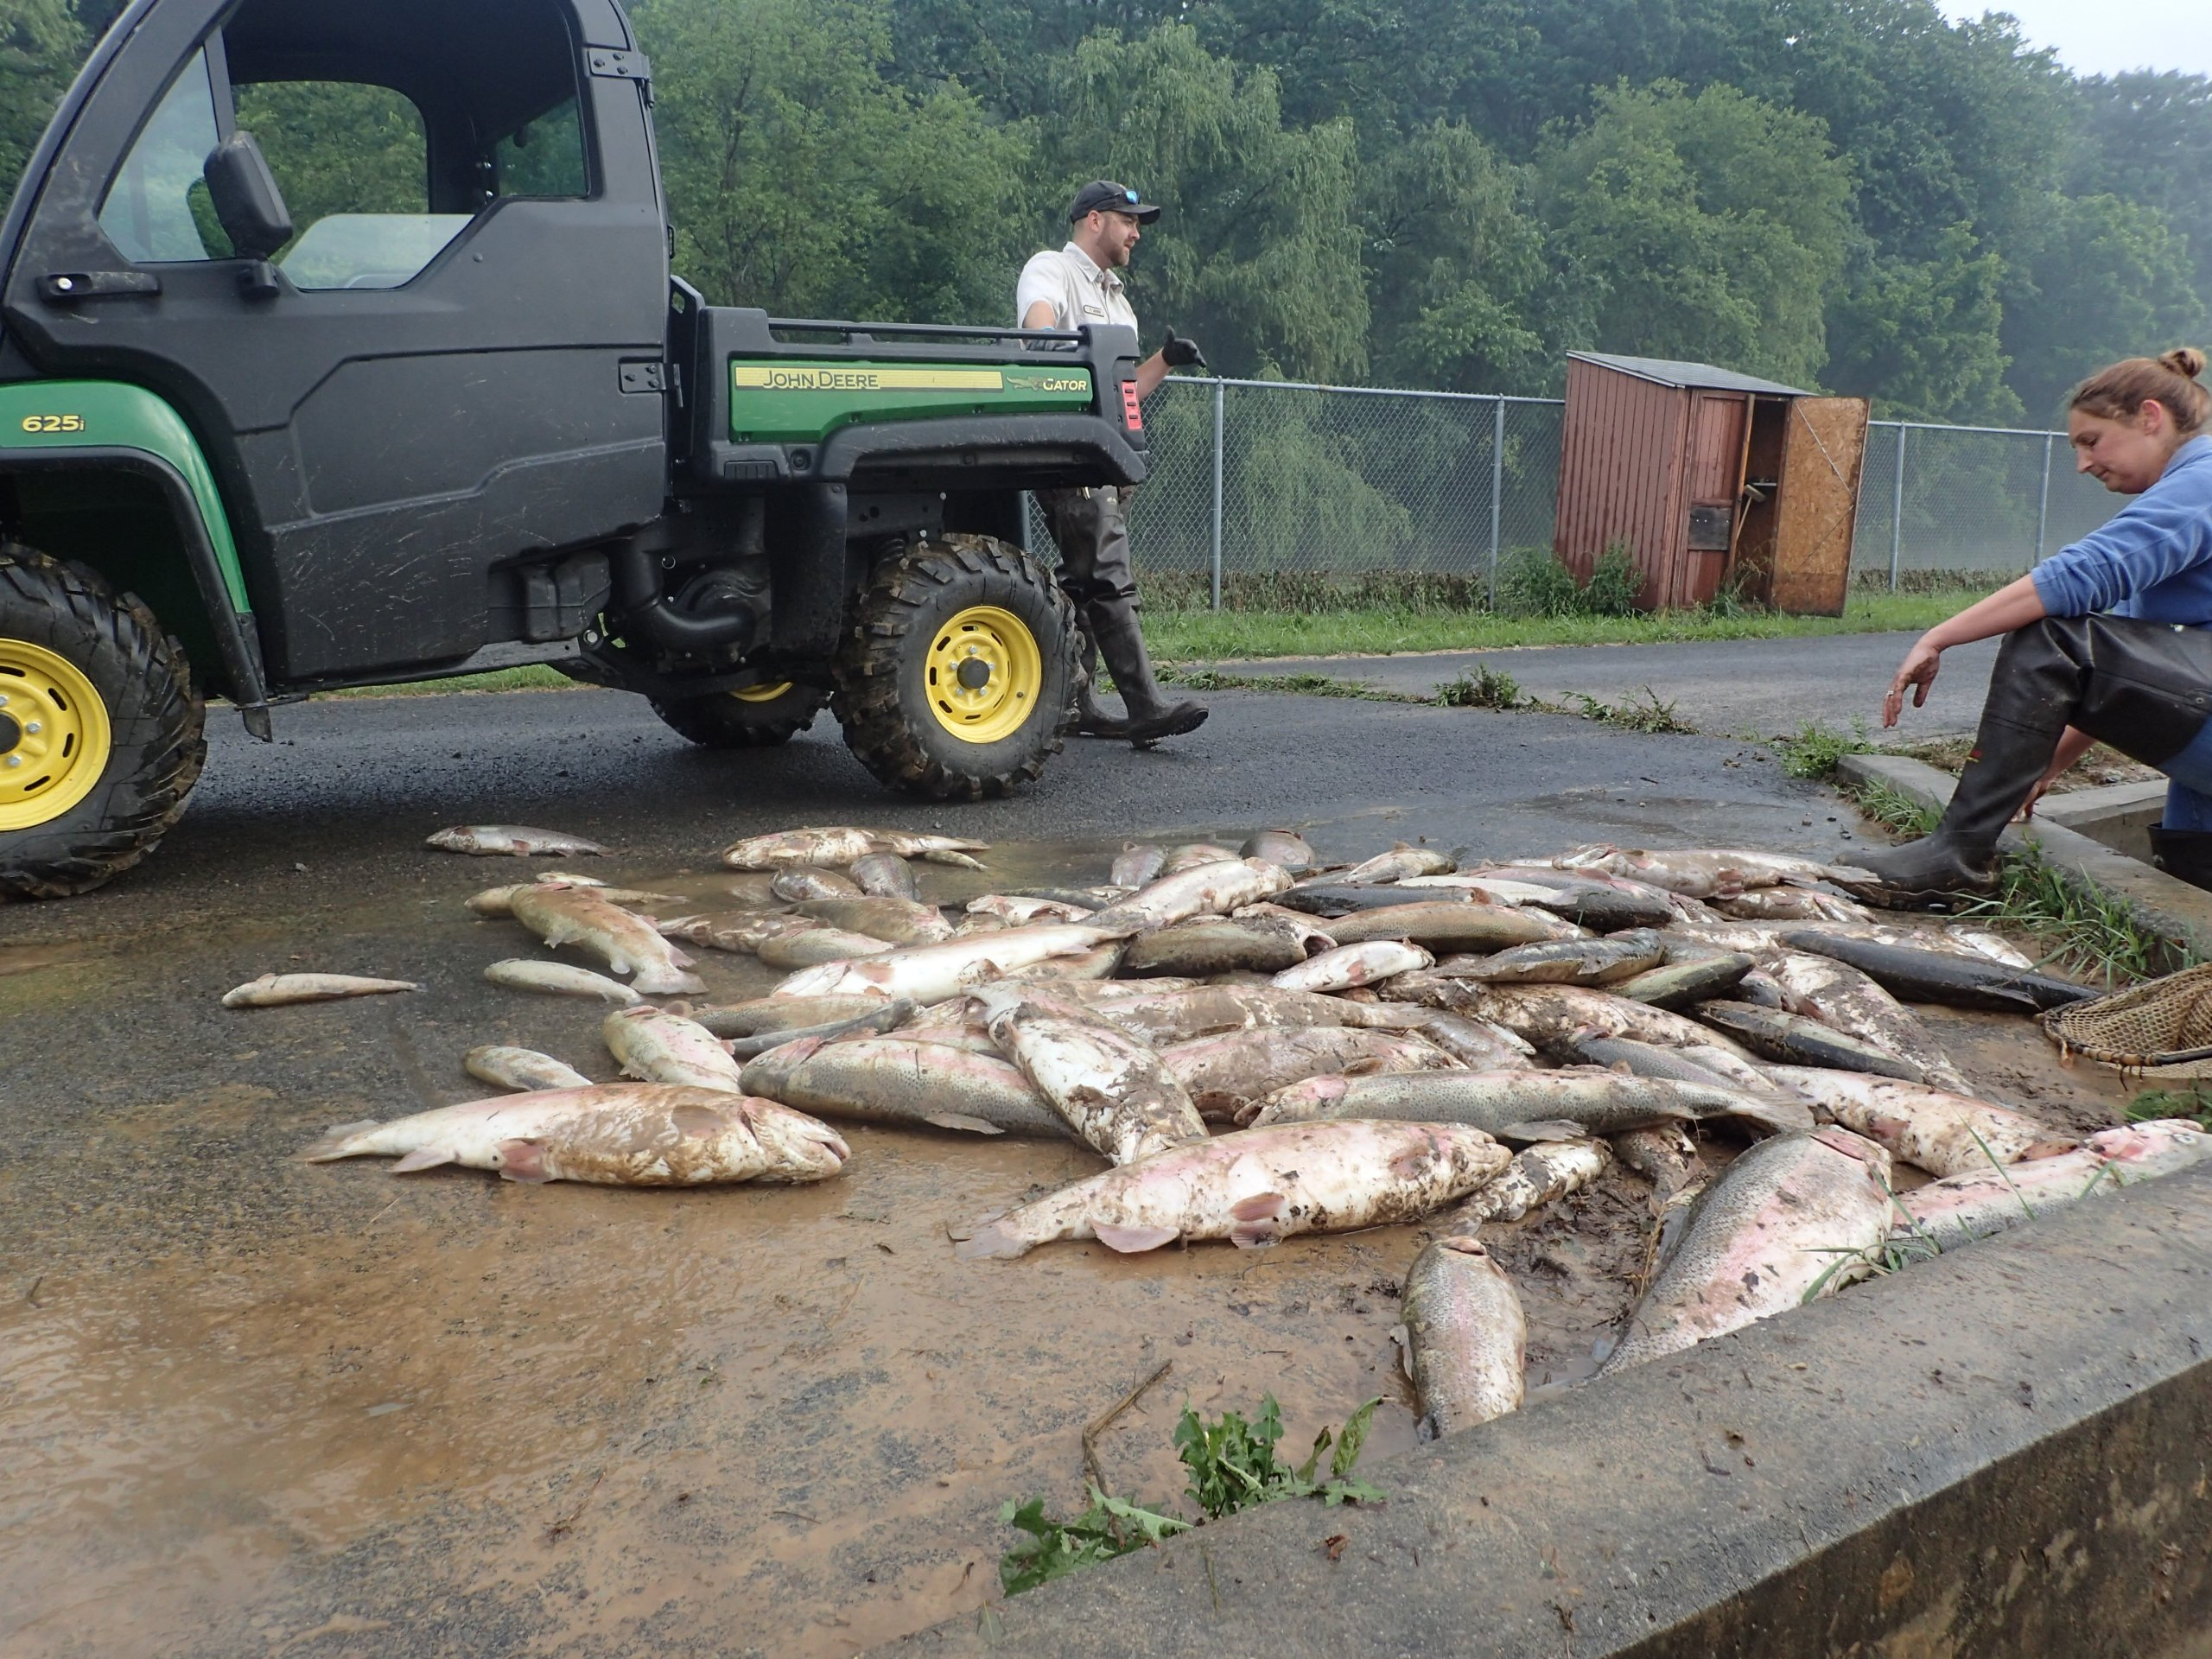 Thousands of trout were carried out of the raceway